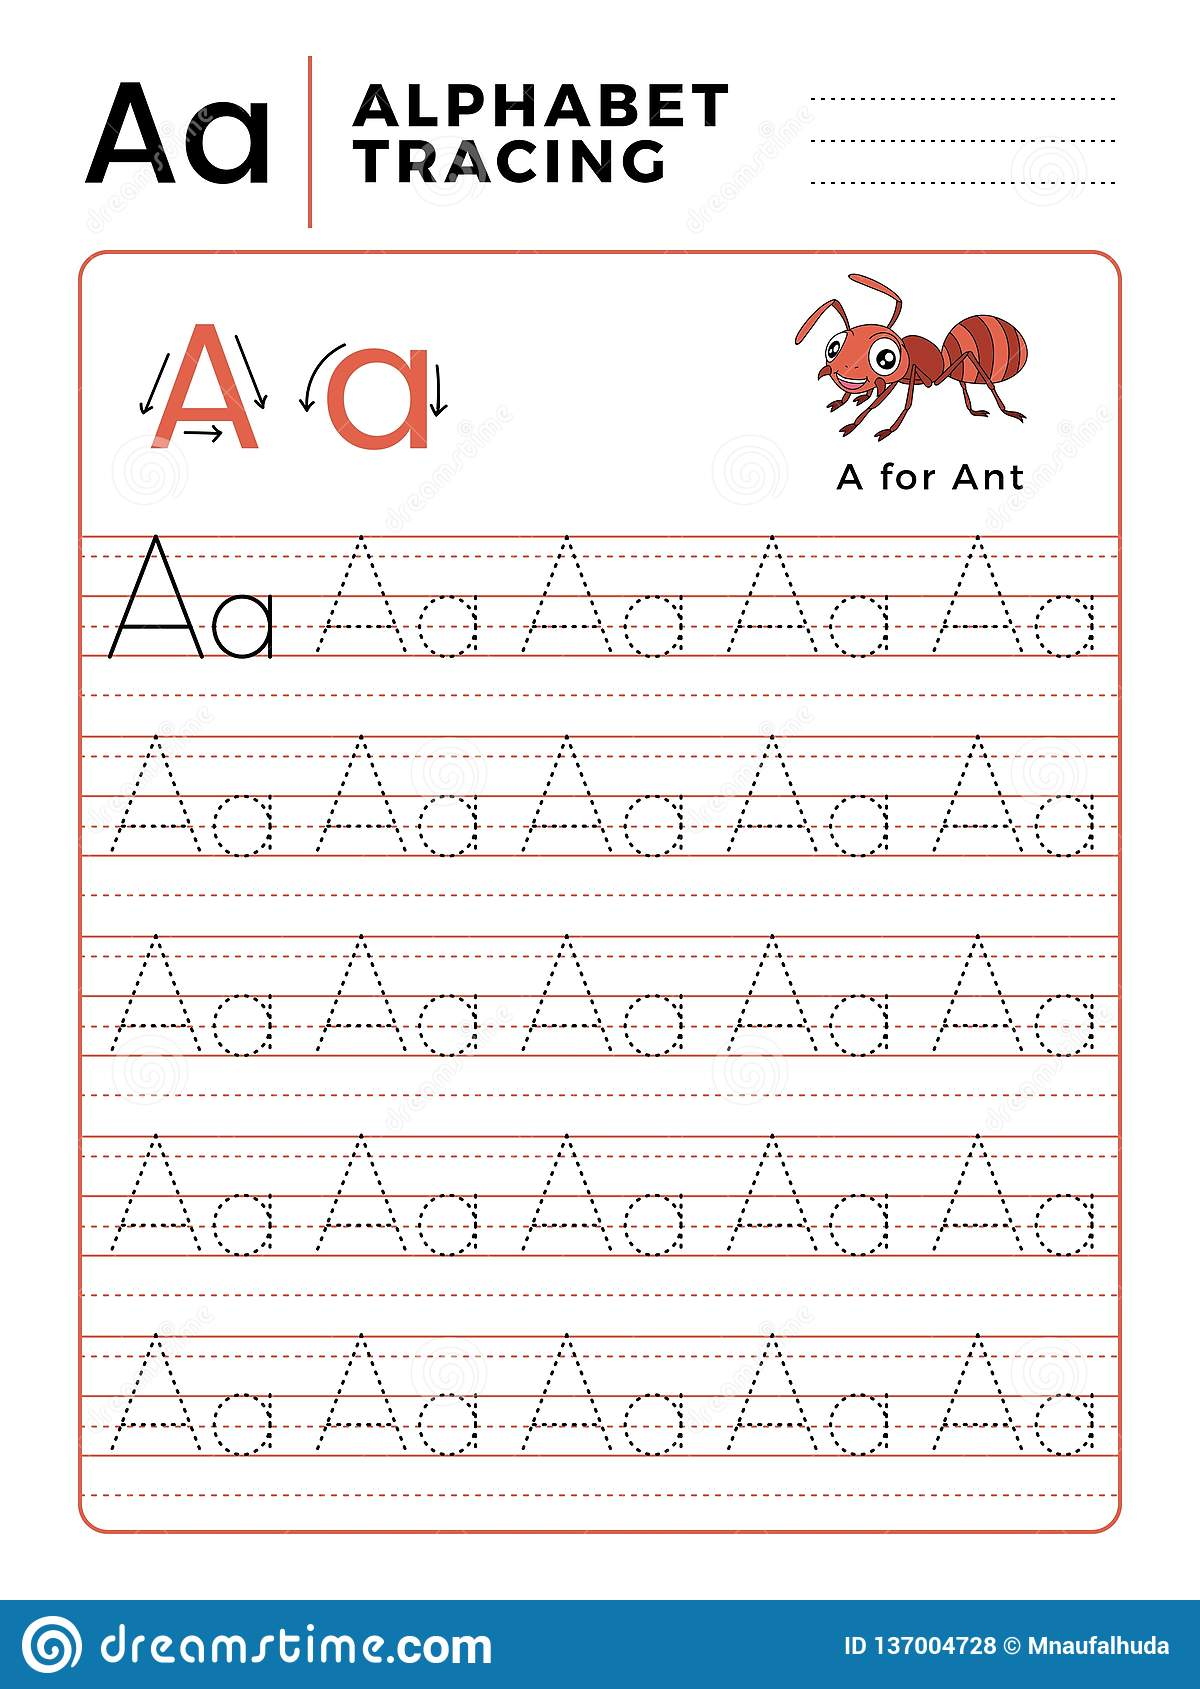 Letter A Alphabet Tracing Book With Example And Funny Ant